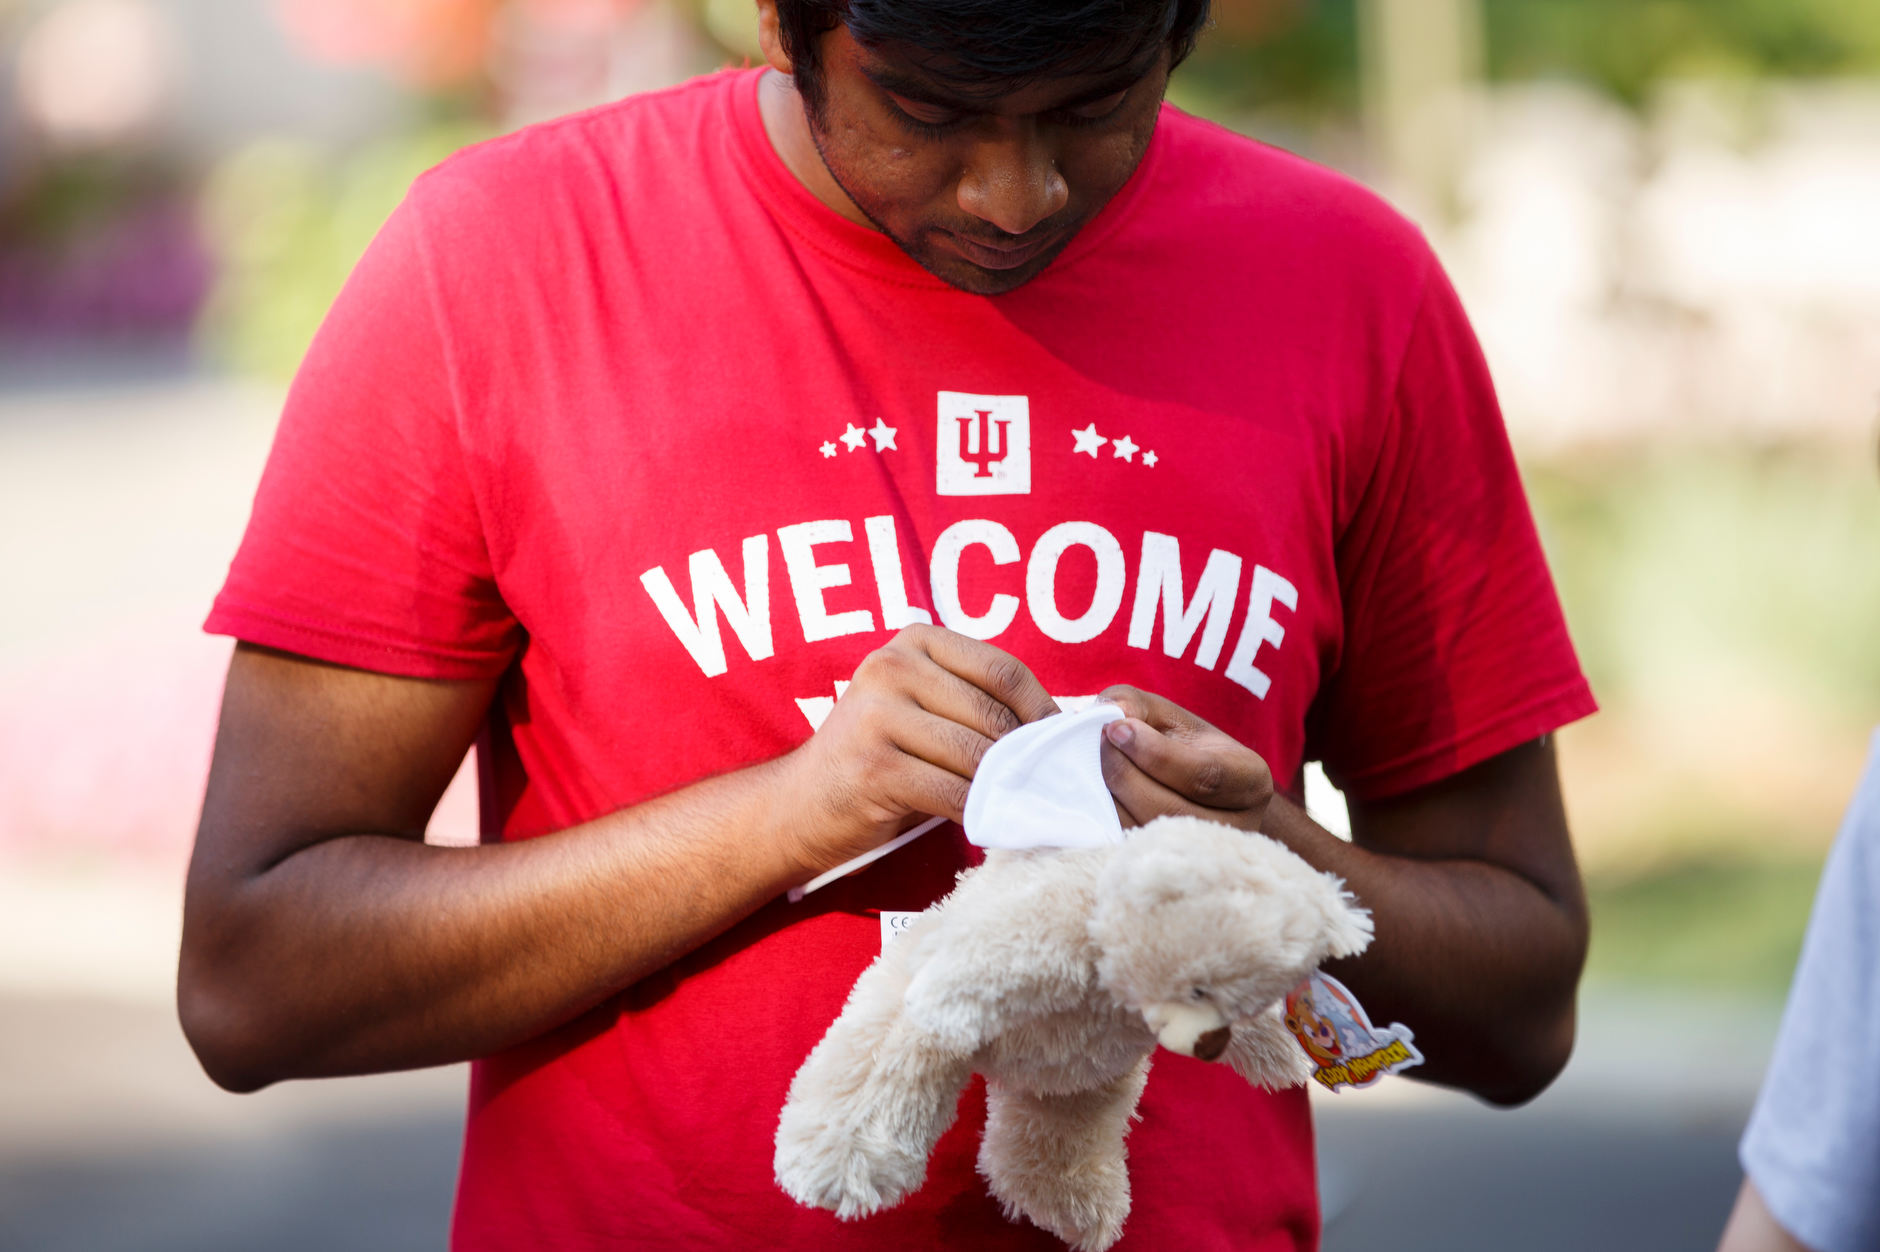 A student stuffs a teddy bear during Bikes and Burgers at IU Bloomington on Monday, Aug. 19, 2019. (James Brosher/Indiana University)